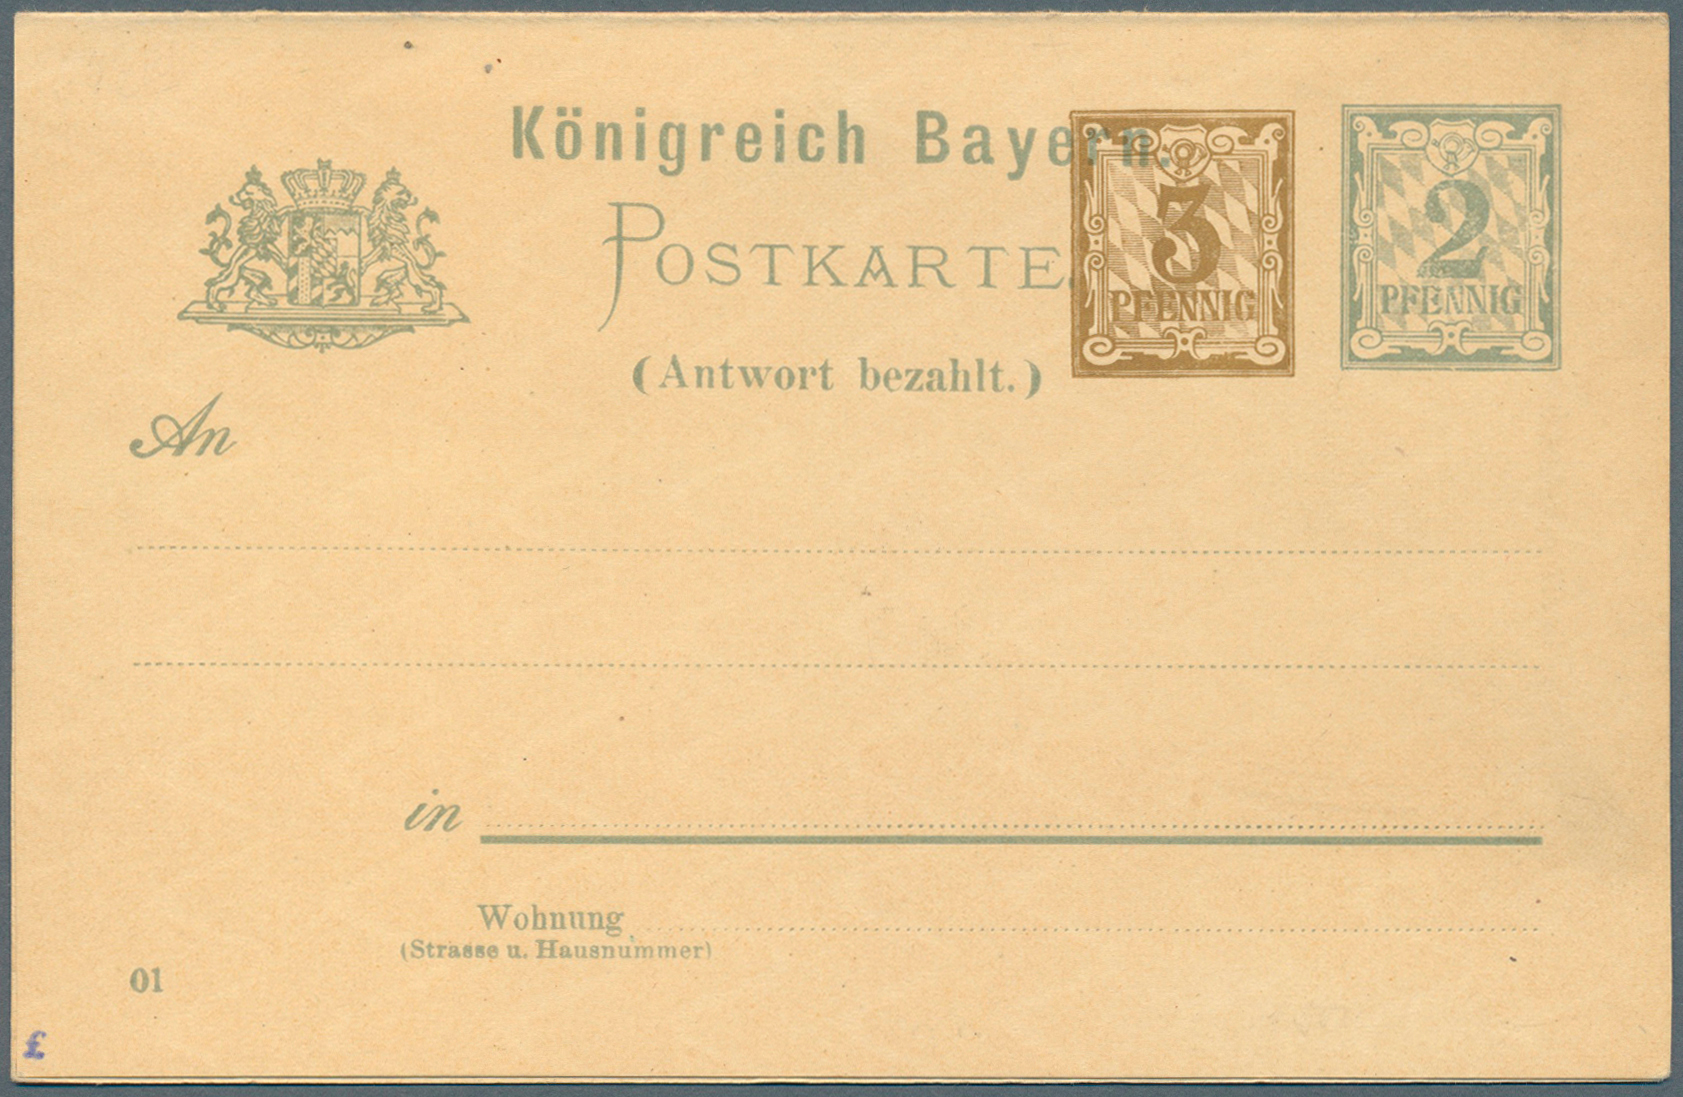 Lot 36323 - bayern - ganzsachen  -  Auktionshaus Christoph Gärtner GmbH & Co. KG Collections Germany,  Collections Supplement, Surprise boxes #39 Day 7